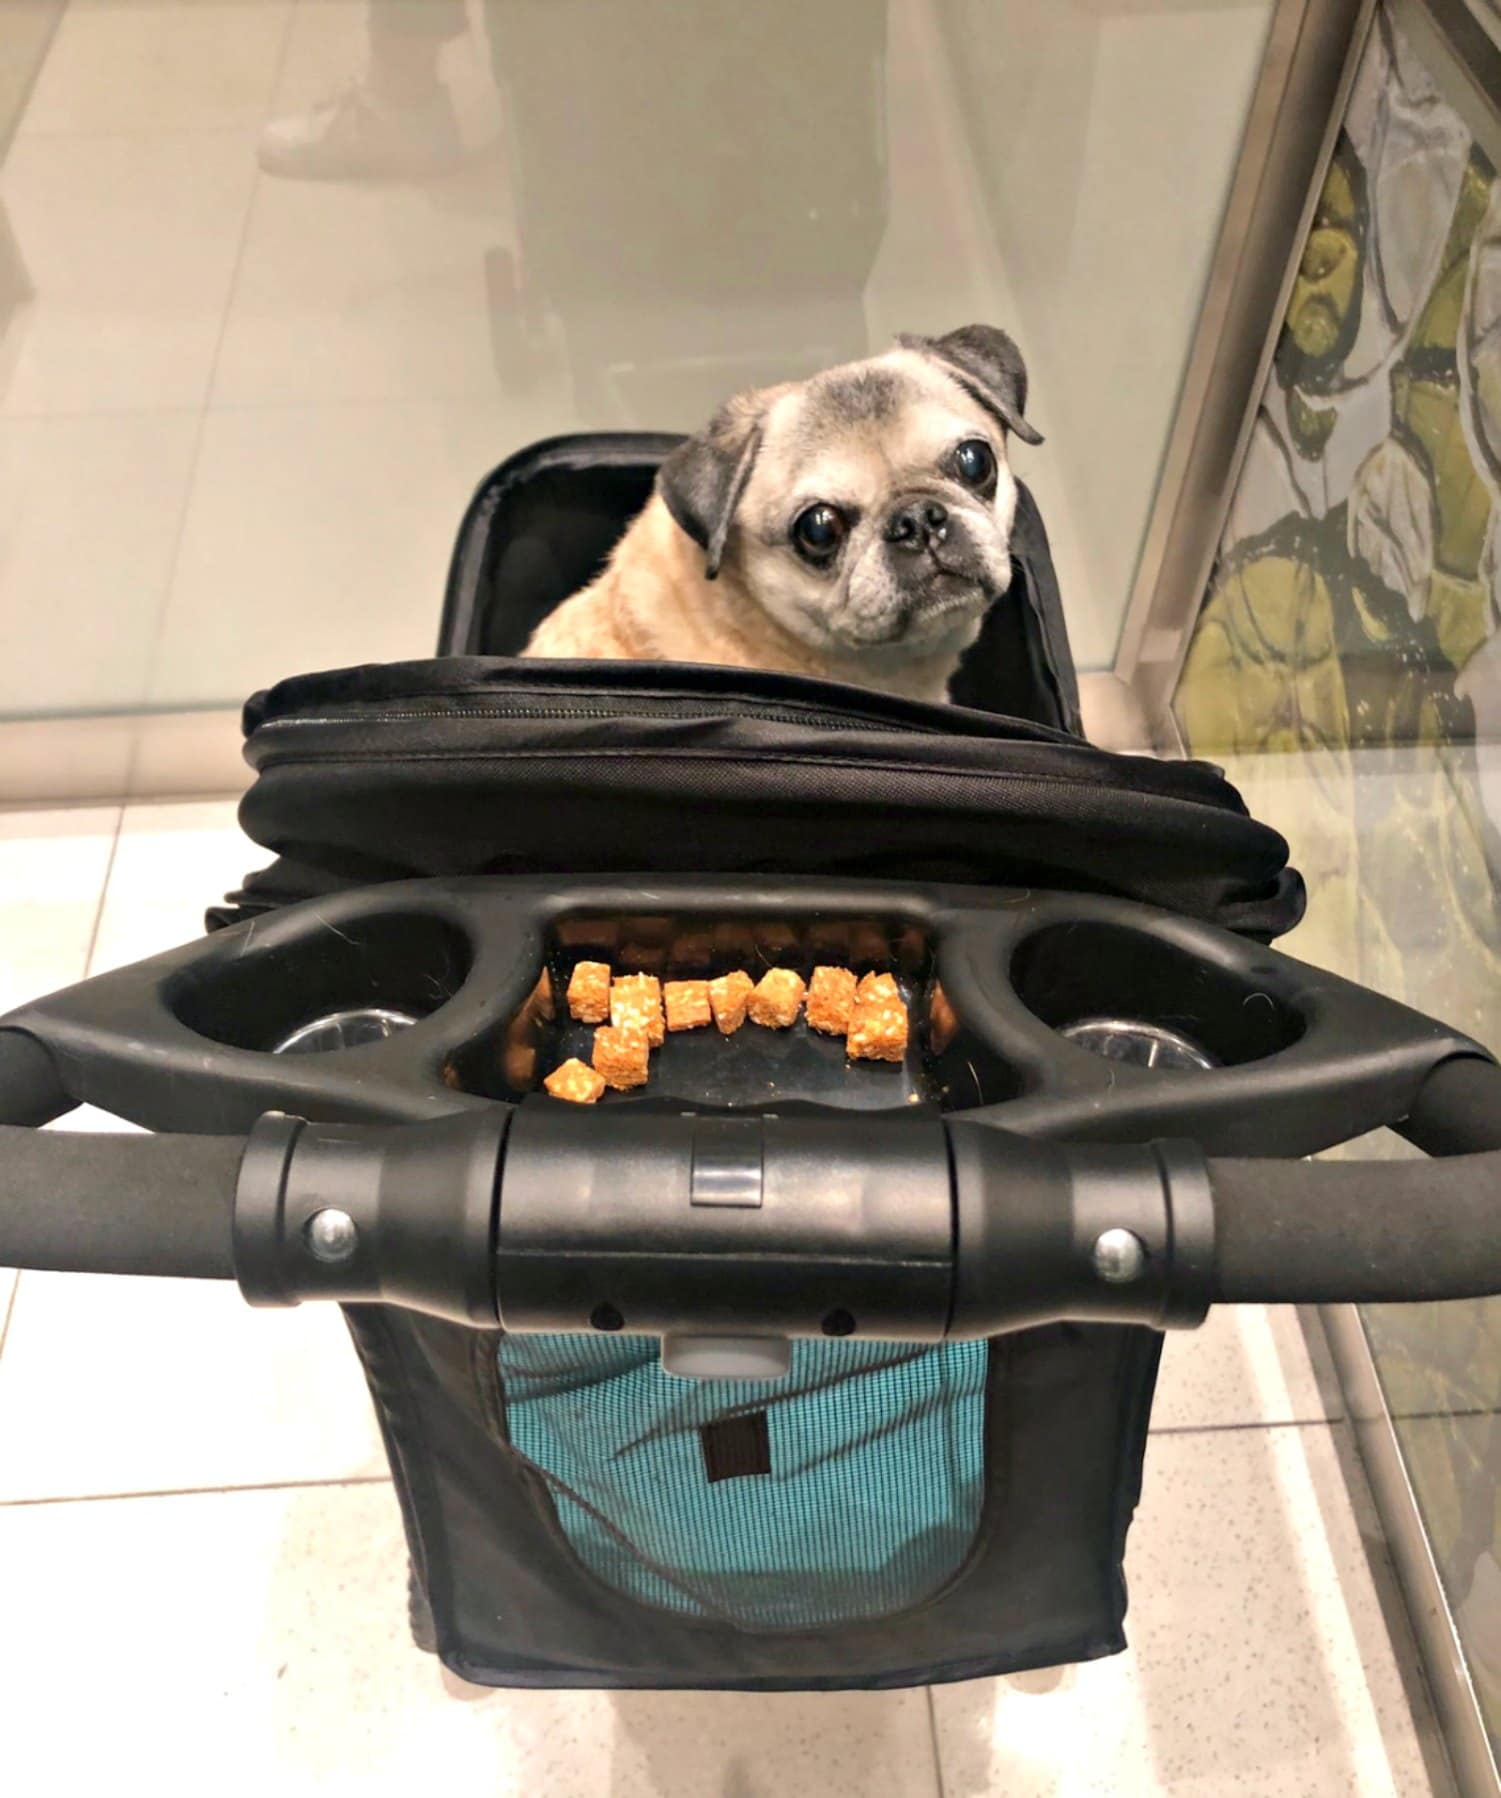 pug with treats in stroller